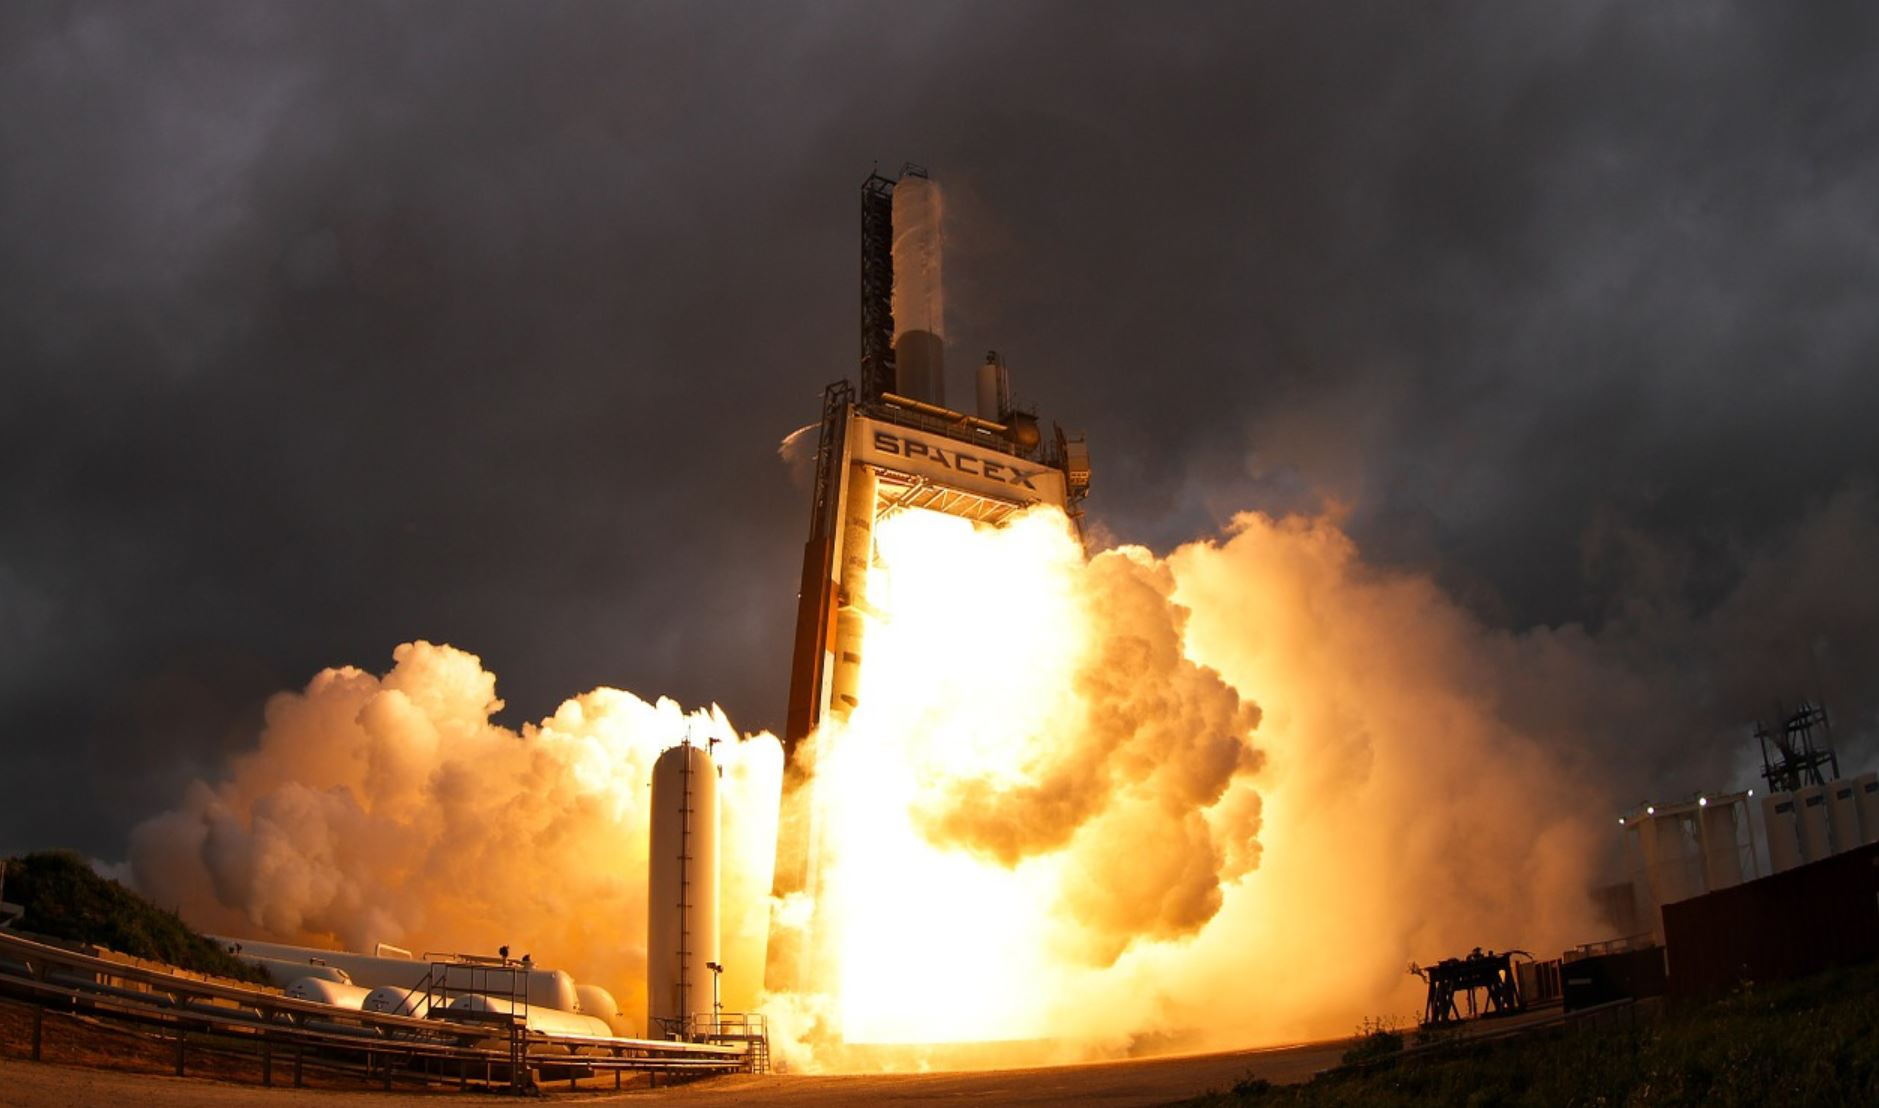 Billionaires Enraged That SpaceX Gets $900M in FCC Subsidies for Broadband Satellites